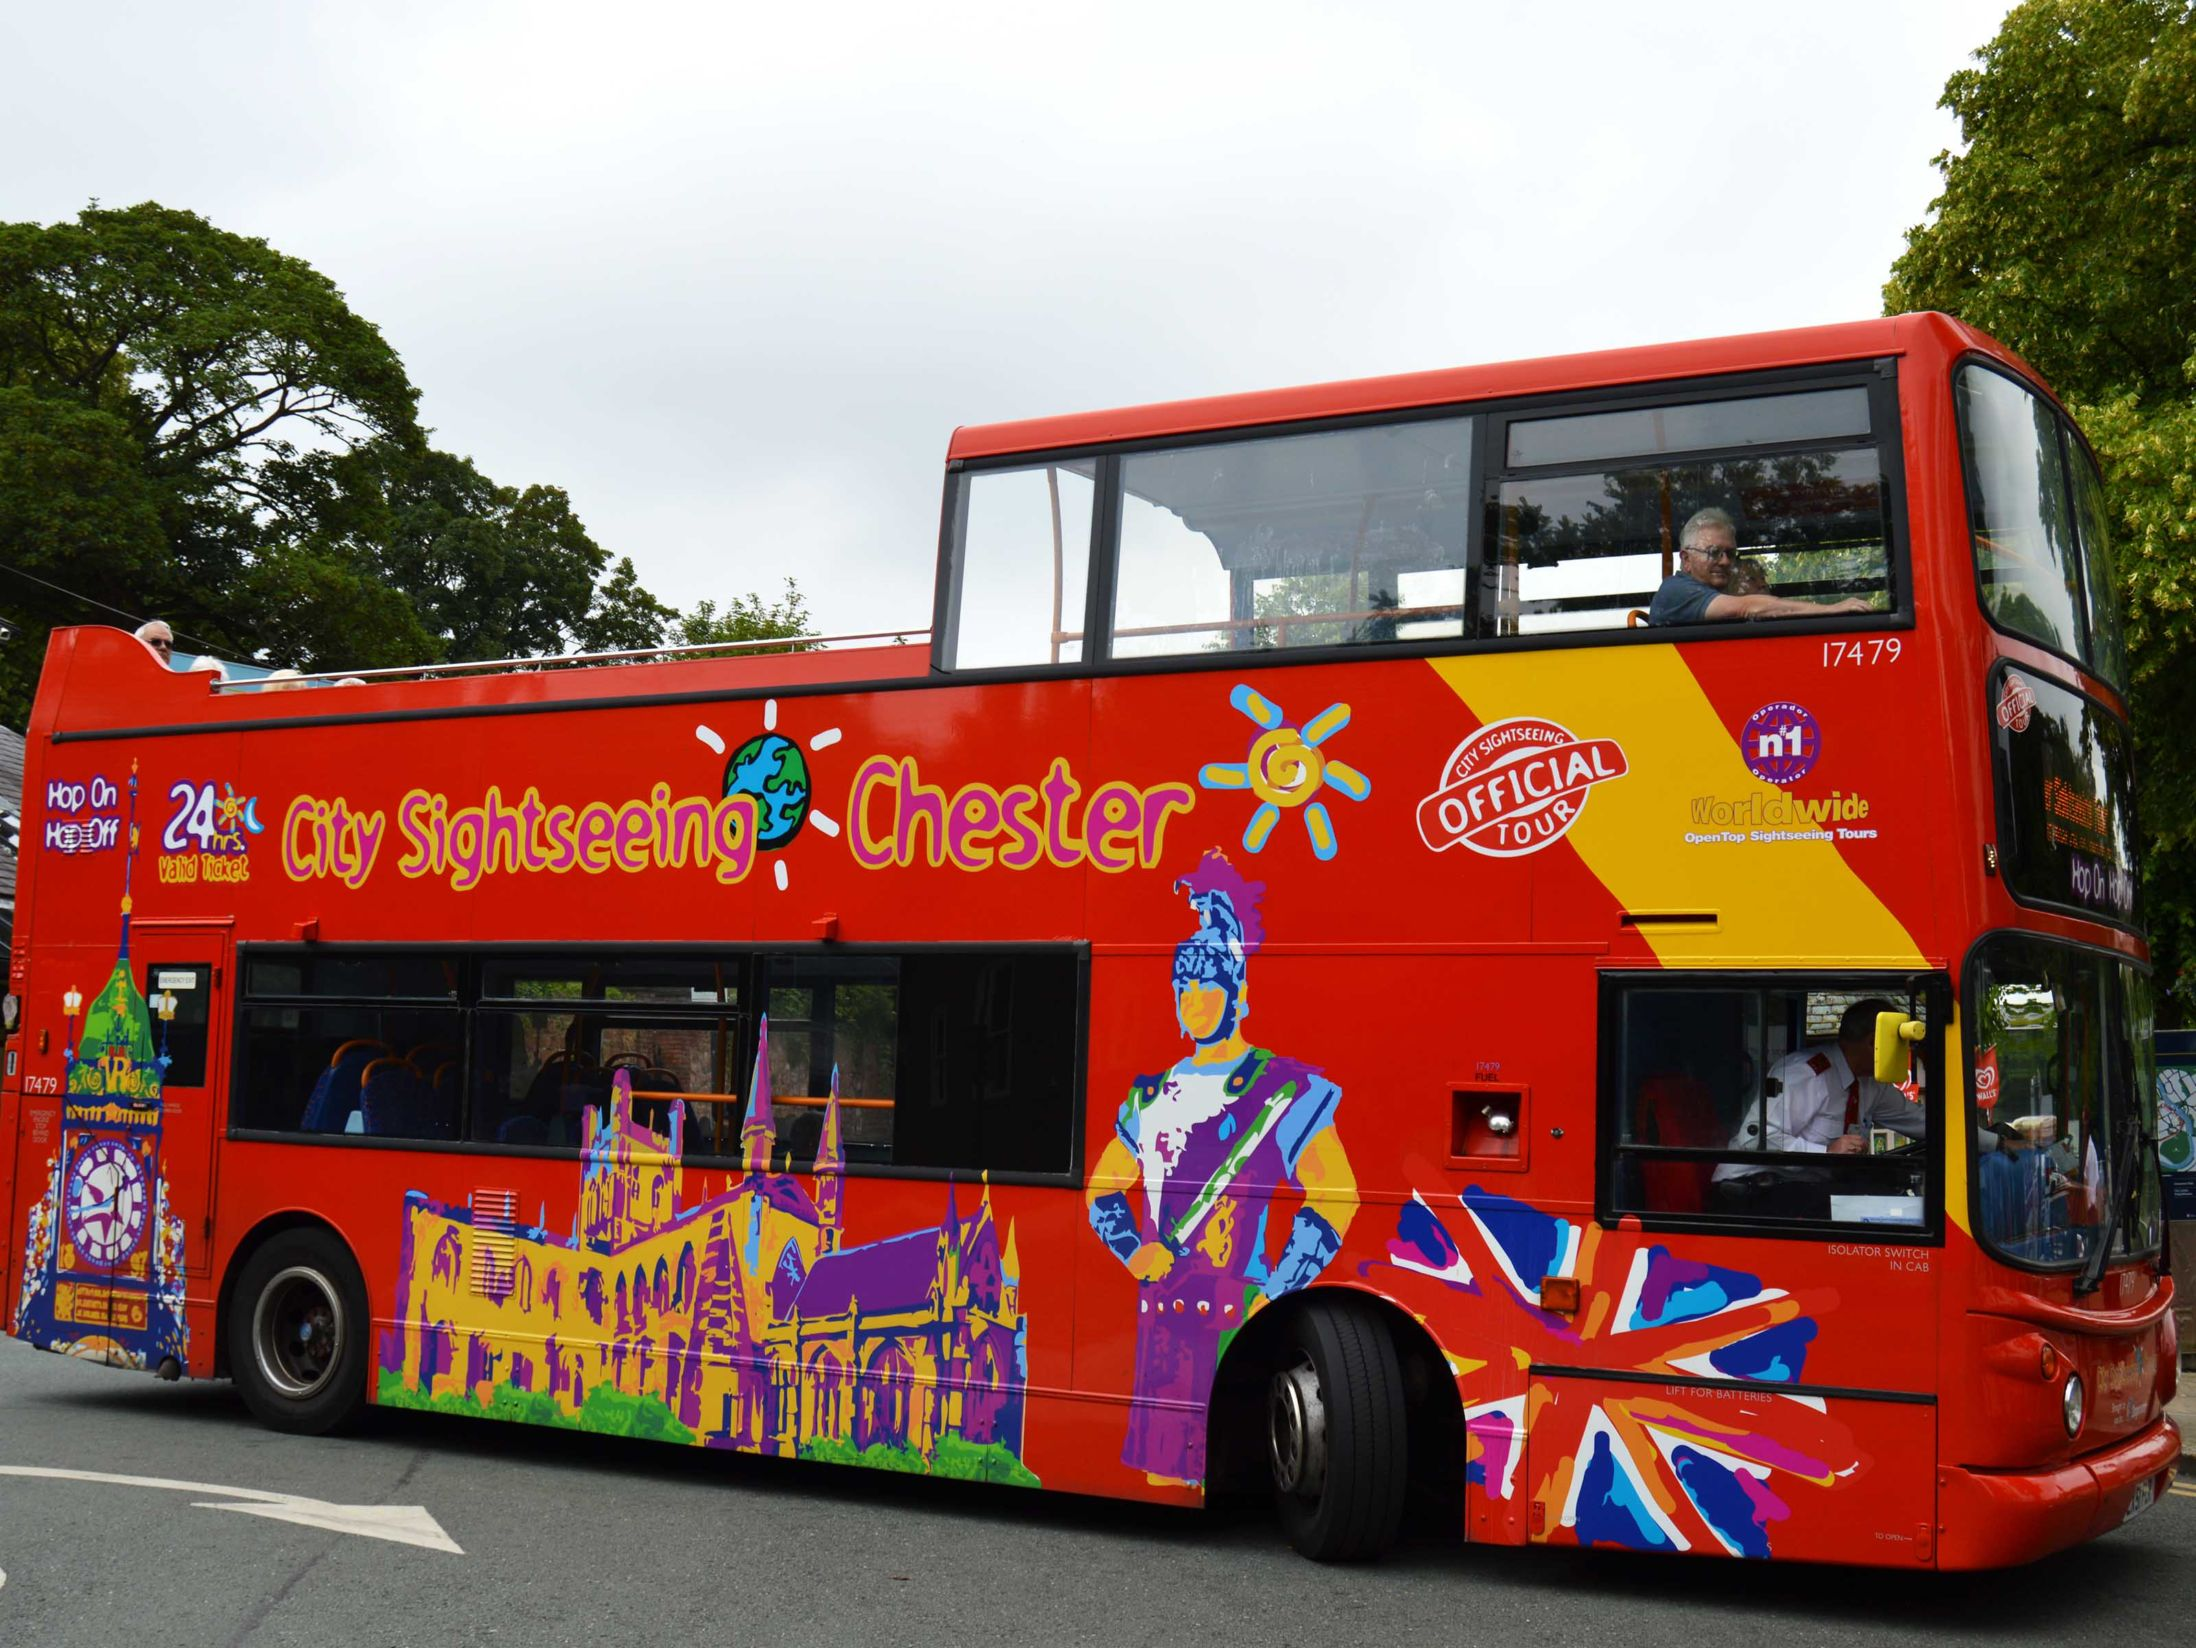 Chester Bus Tour - Things to Do in Chester